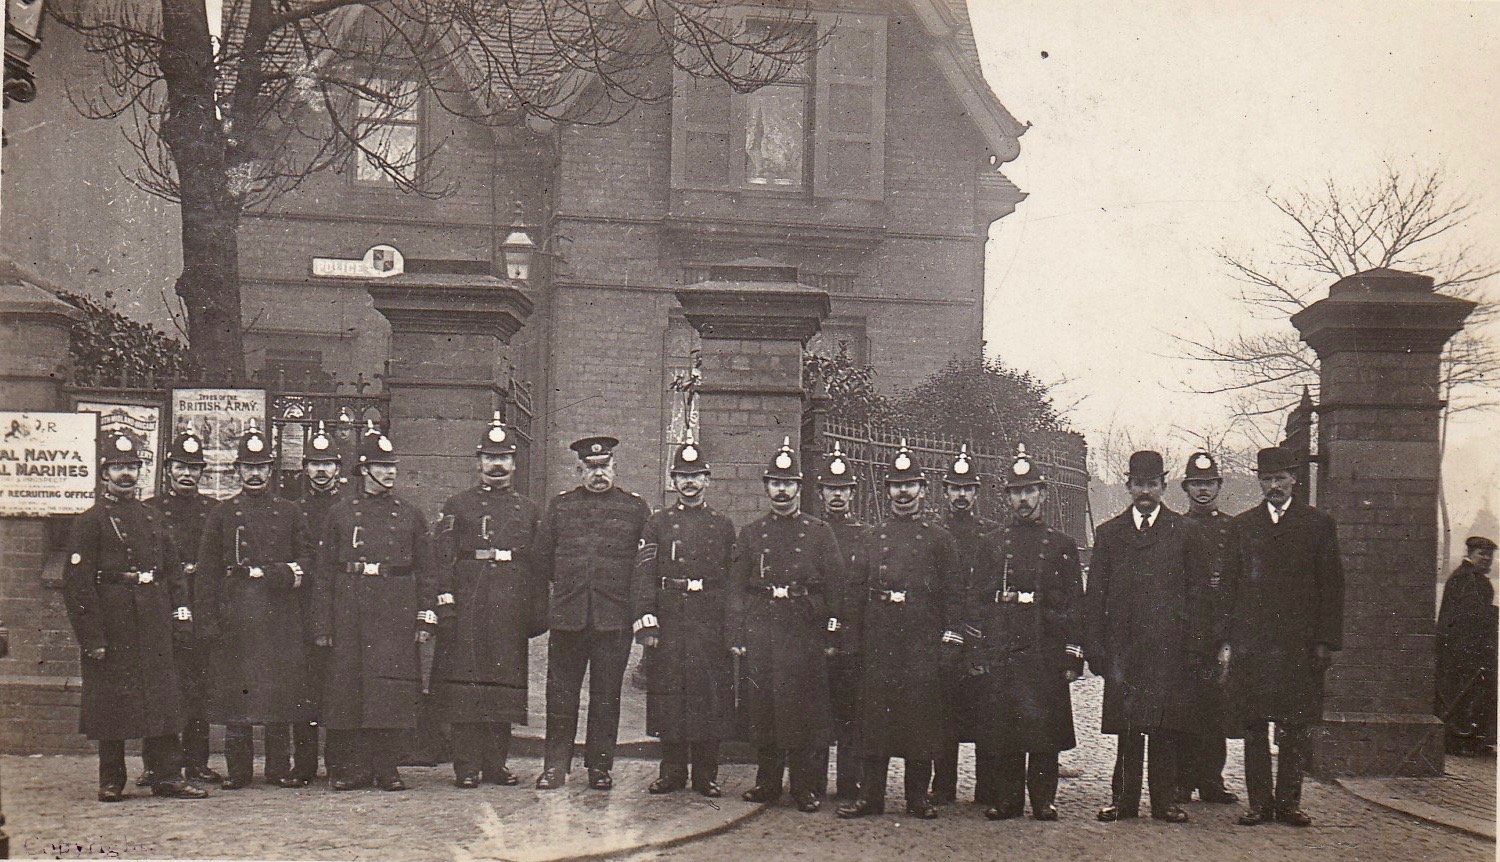 POLICEMEN LINE UP OUTSIDE DUDLEY ROAD POLICE STATION EARLY 1900. WITH SUMMERFIELD PARK ENTRANCE BEHIND.